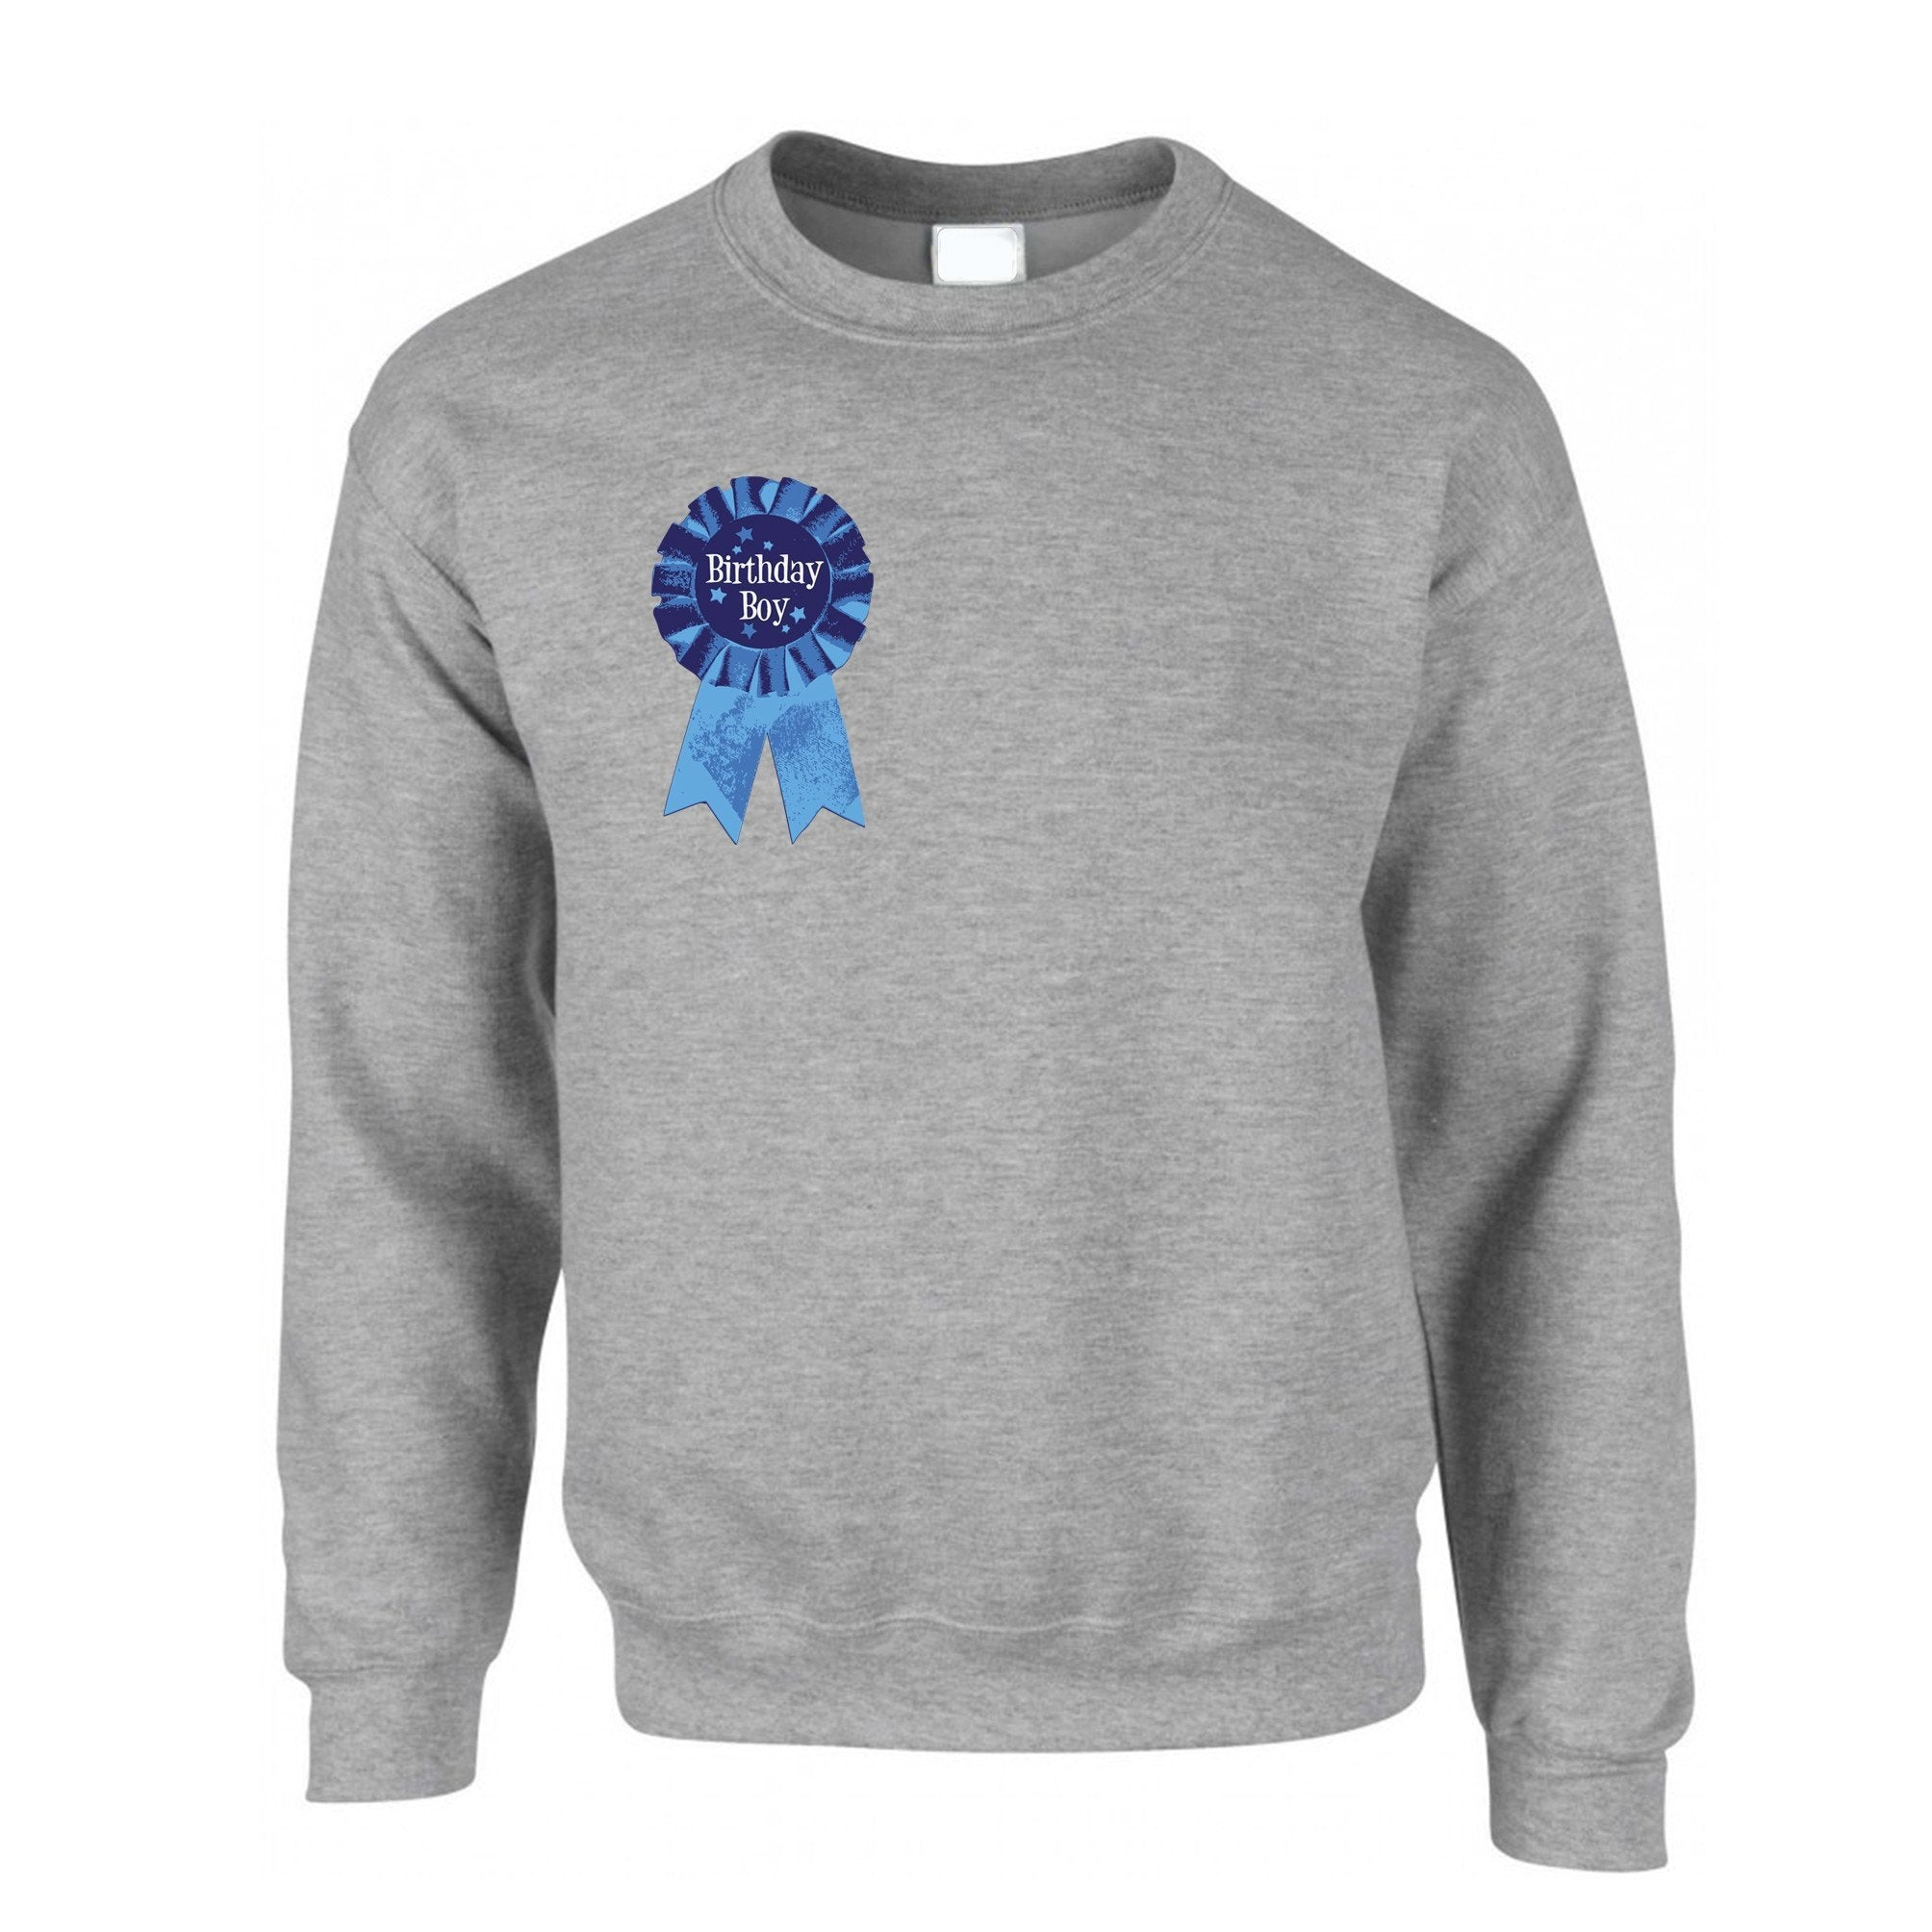 Novelty Party Jumper Birthday Boy Pocket Print Badge Sweatshirt Sweater